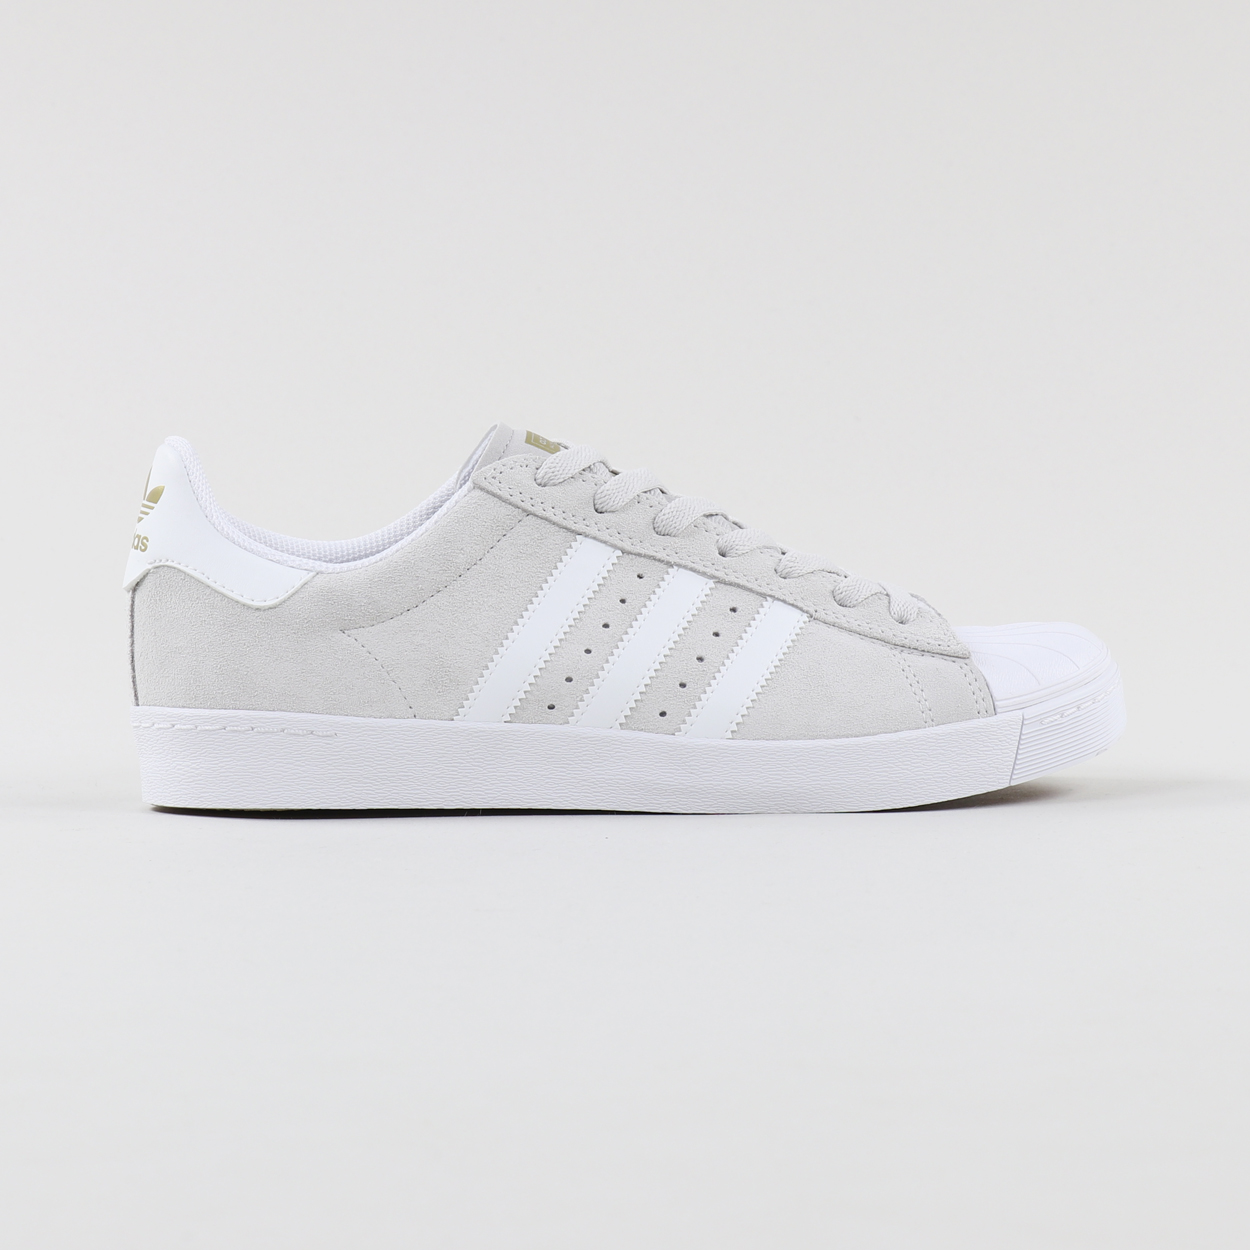 shepherd Wording Fjord  Adidas Skateboarding Superstar Vulc ADV Shoes Grey White Gold